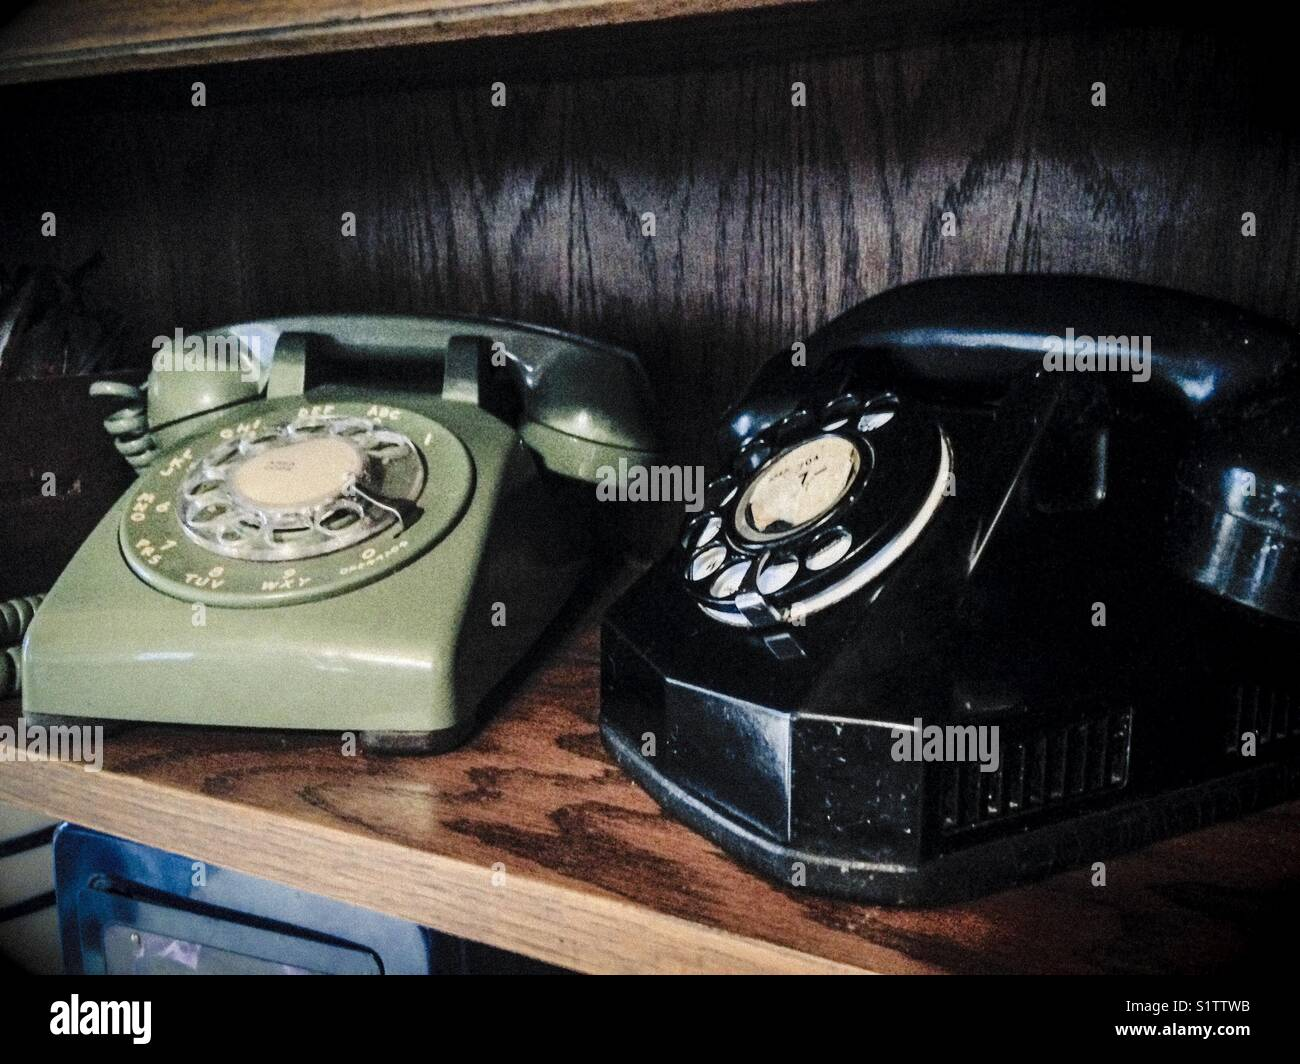 Vintage telephones in wooden bookshelf - Stock Image